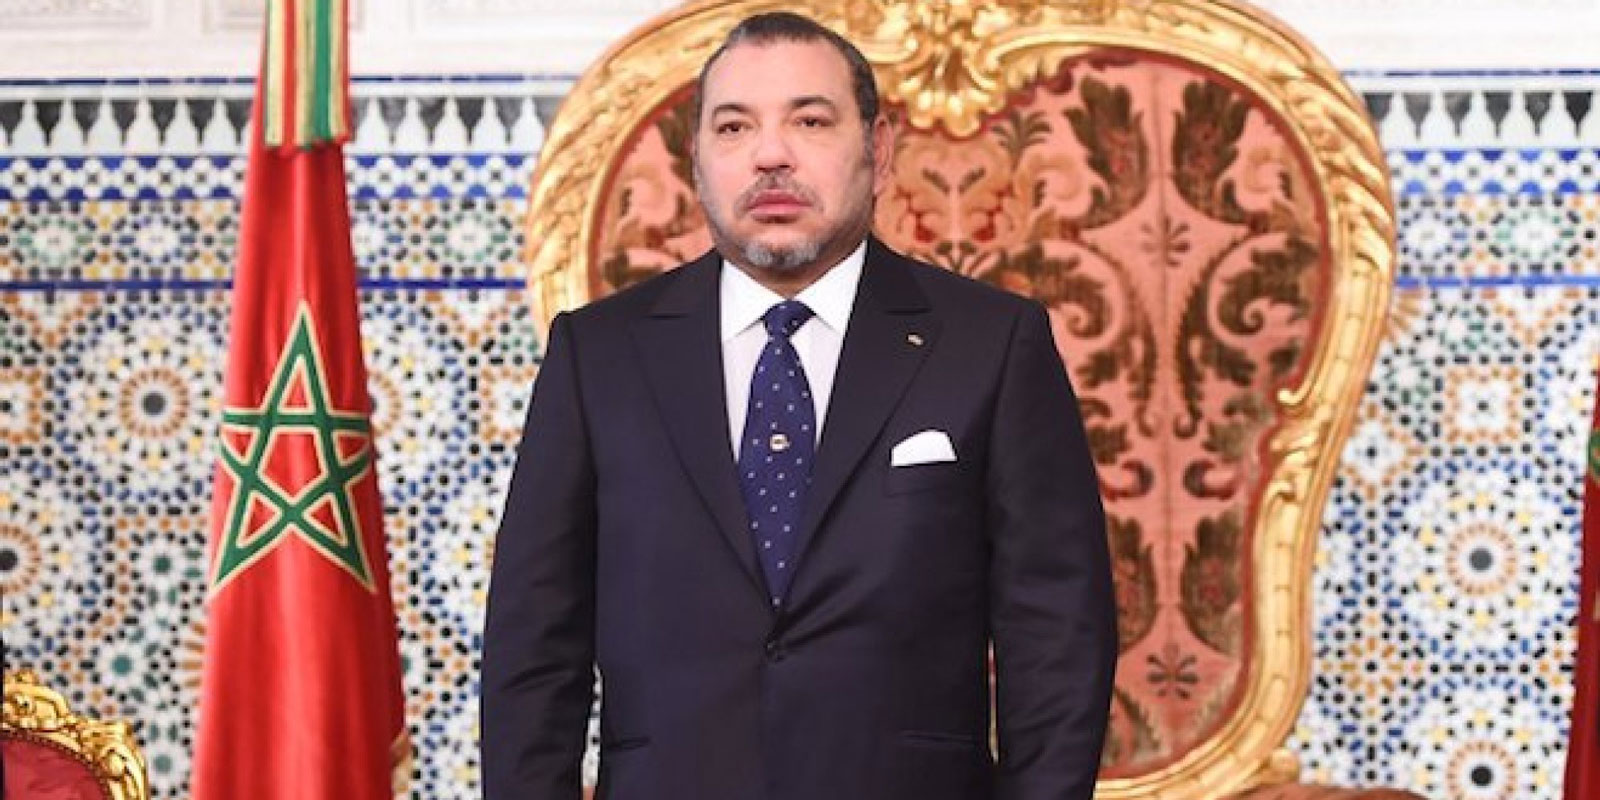 Morocco Shows No Backtracking on Accountability